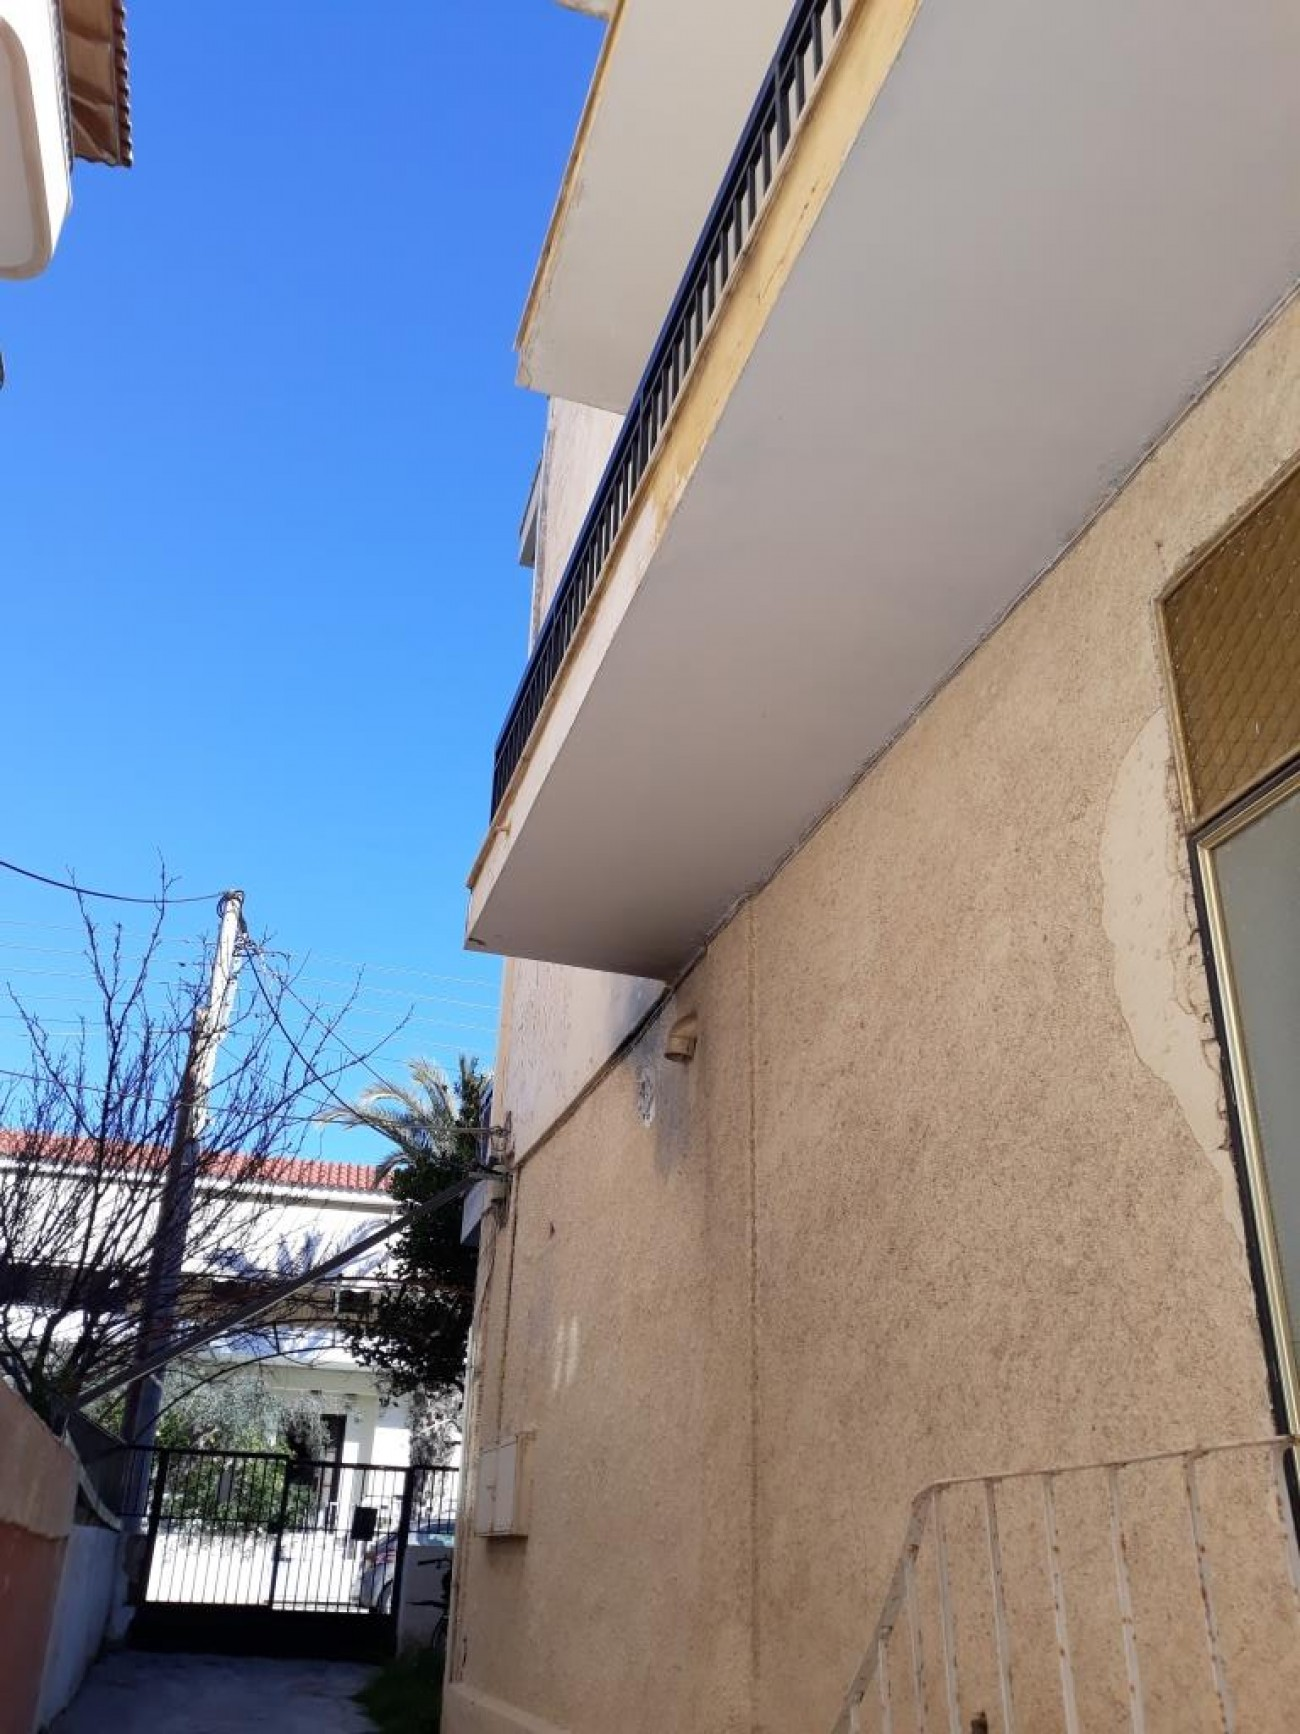 Residential Other for Sale in Nea Chalkidona, Central & West Region of Athens, Greece